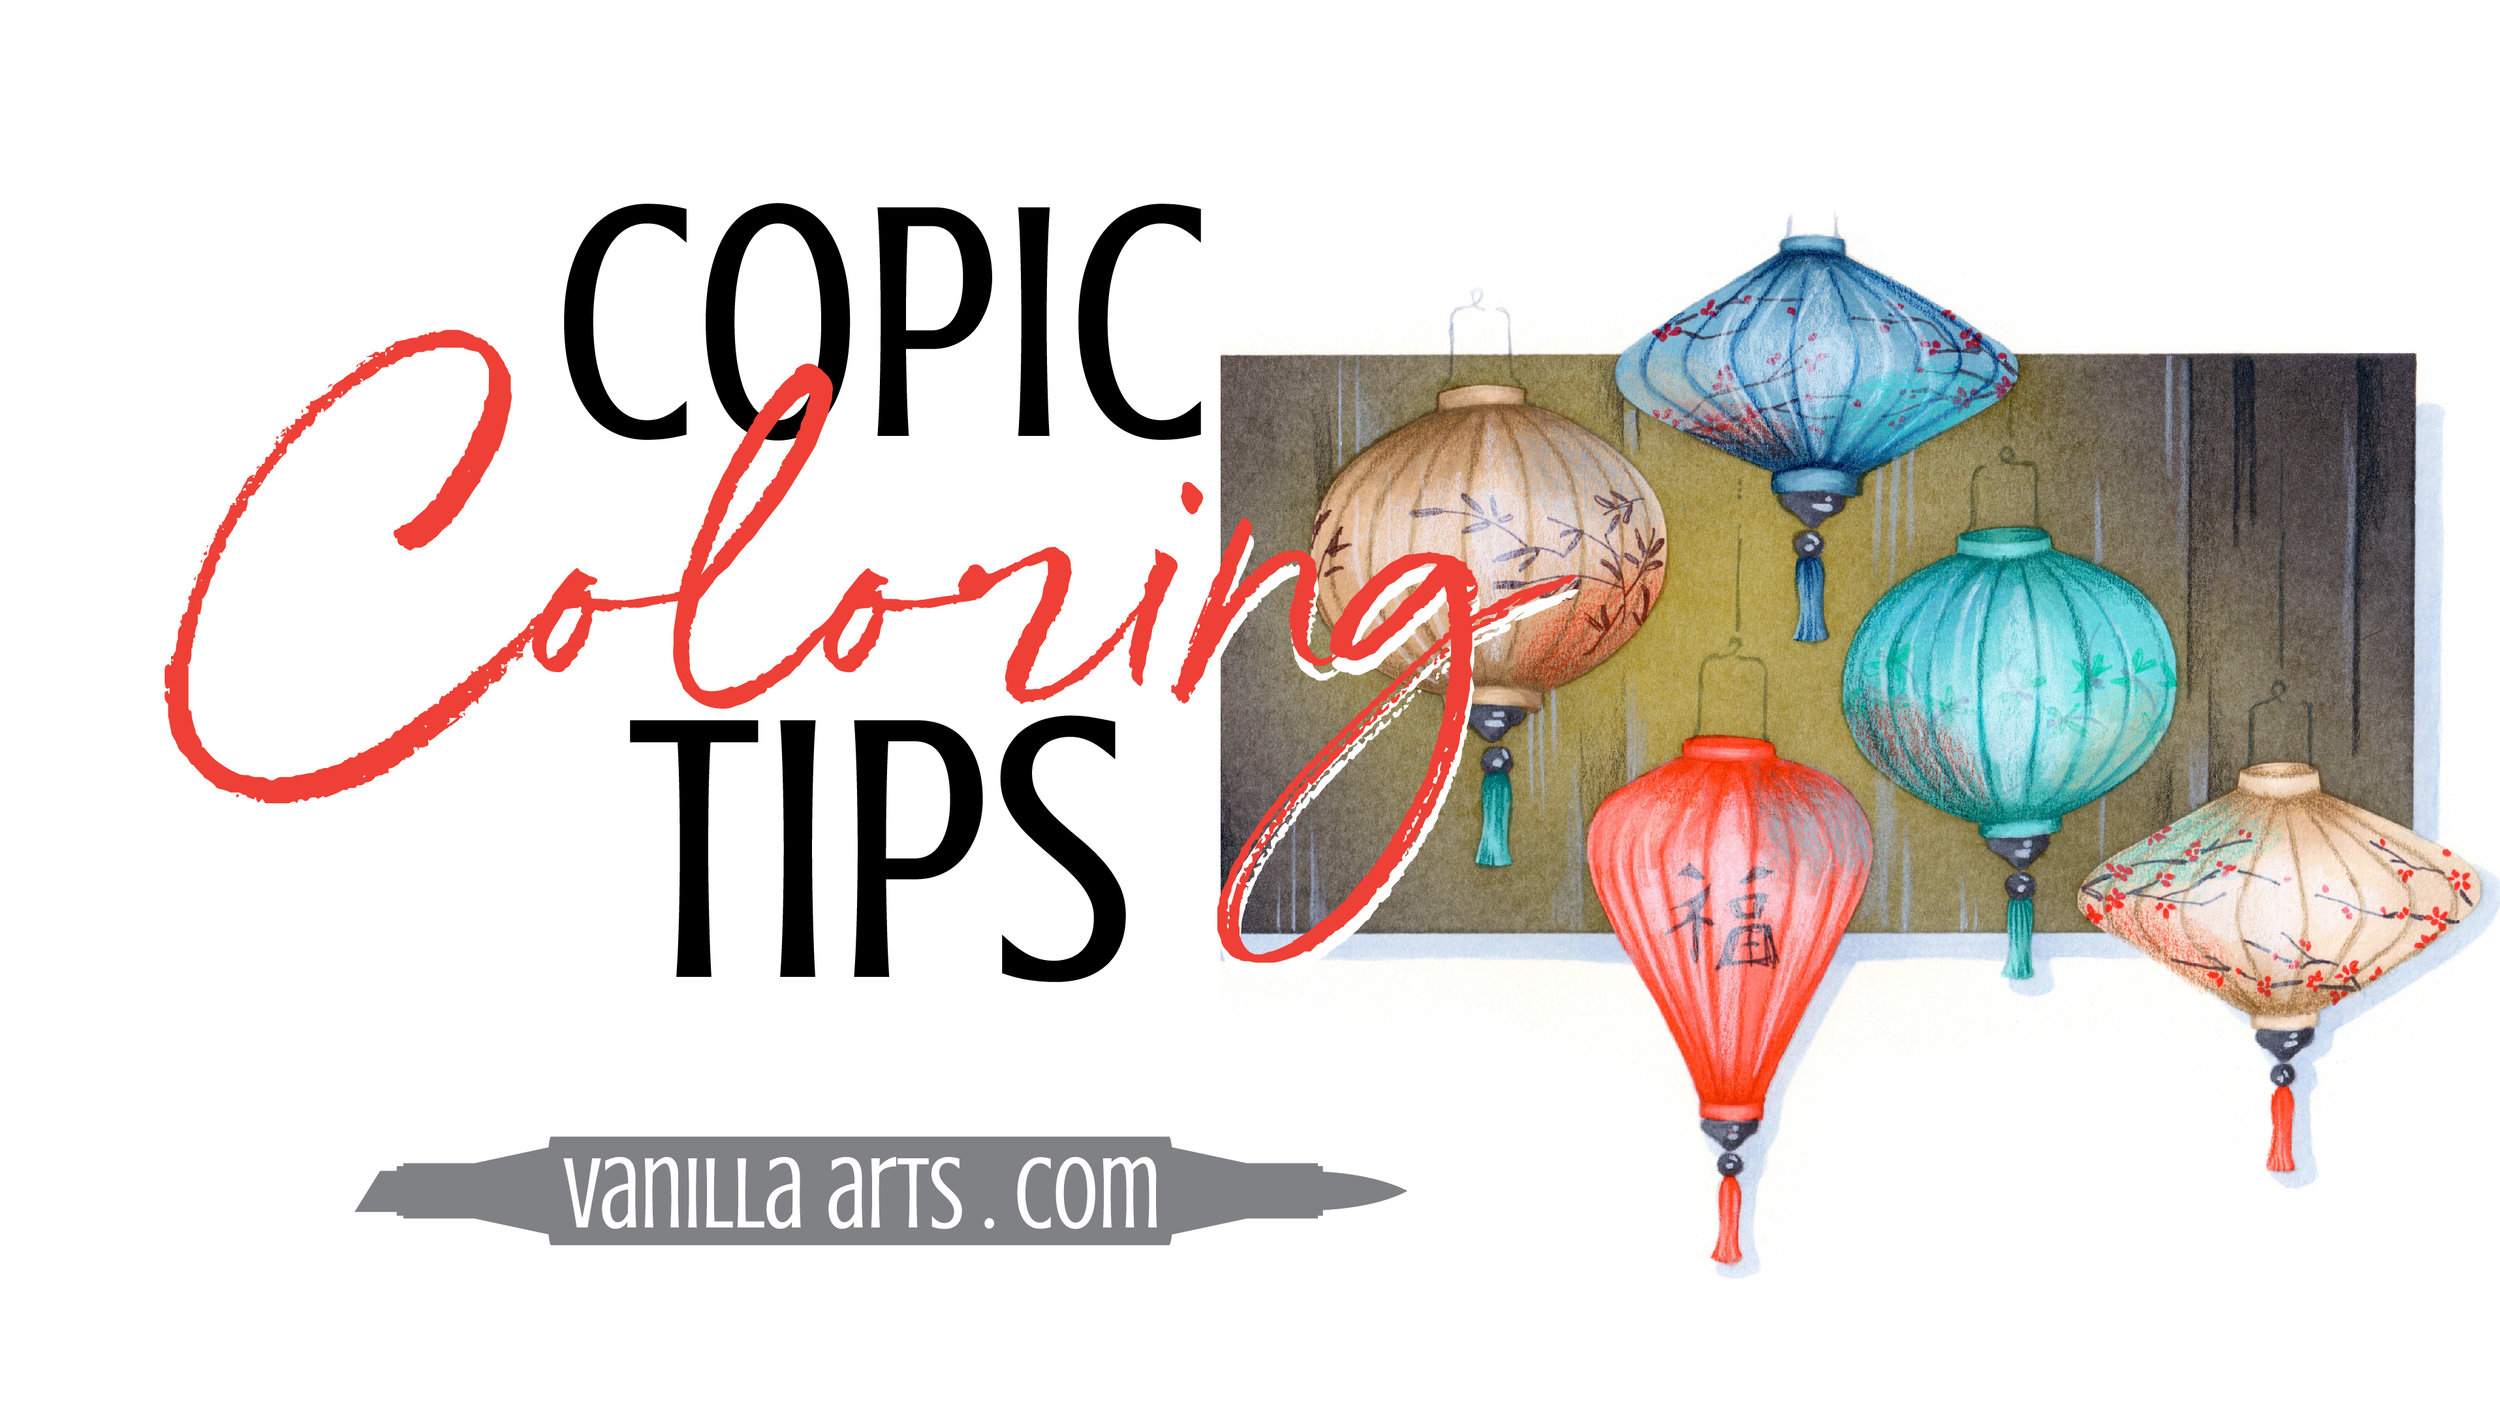 Copic Marker tips by Amy Shulke of Vanilla Arts Company. Advance your coloring and change the way you think about Copic Markers, colored pencils. You can color with realism! | VanillaArts.com | #copicmarker #coloredpencil #coloring #howtocolor #realisticcoloring